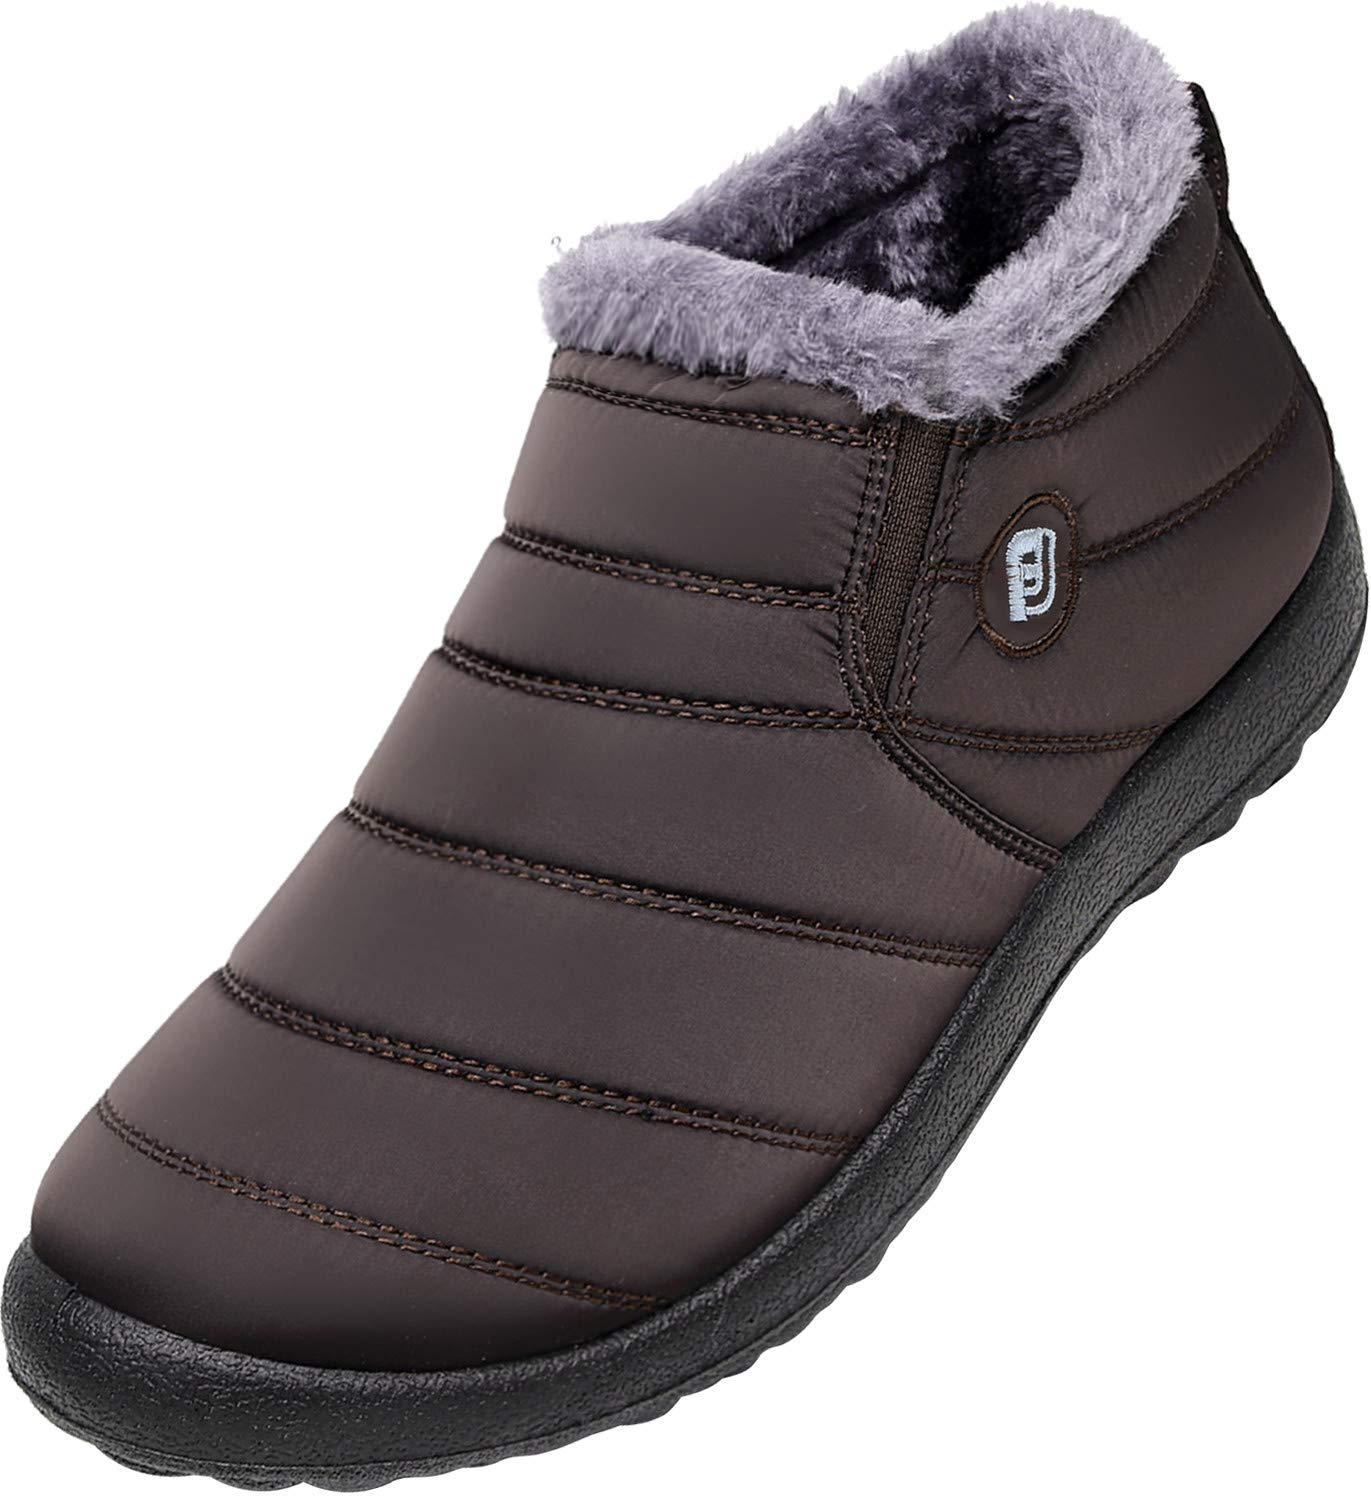 JOINFREE Womens Anti-Slip Winter Outdoor Slippers Fur Lined Ankle Booties Brown 7.5 B(M) US